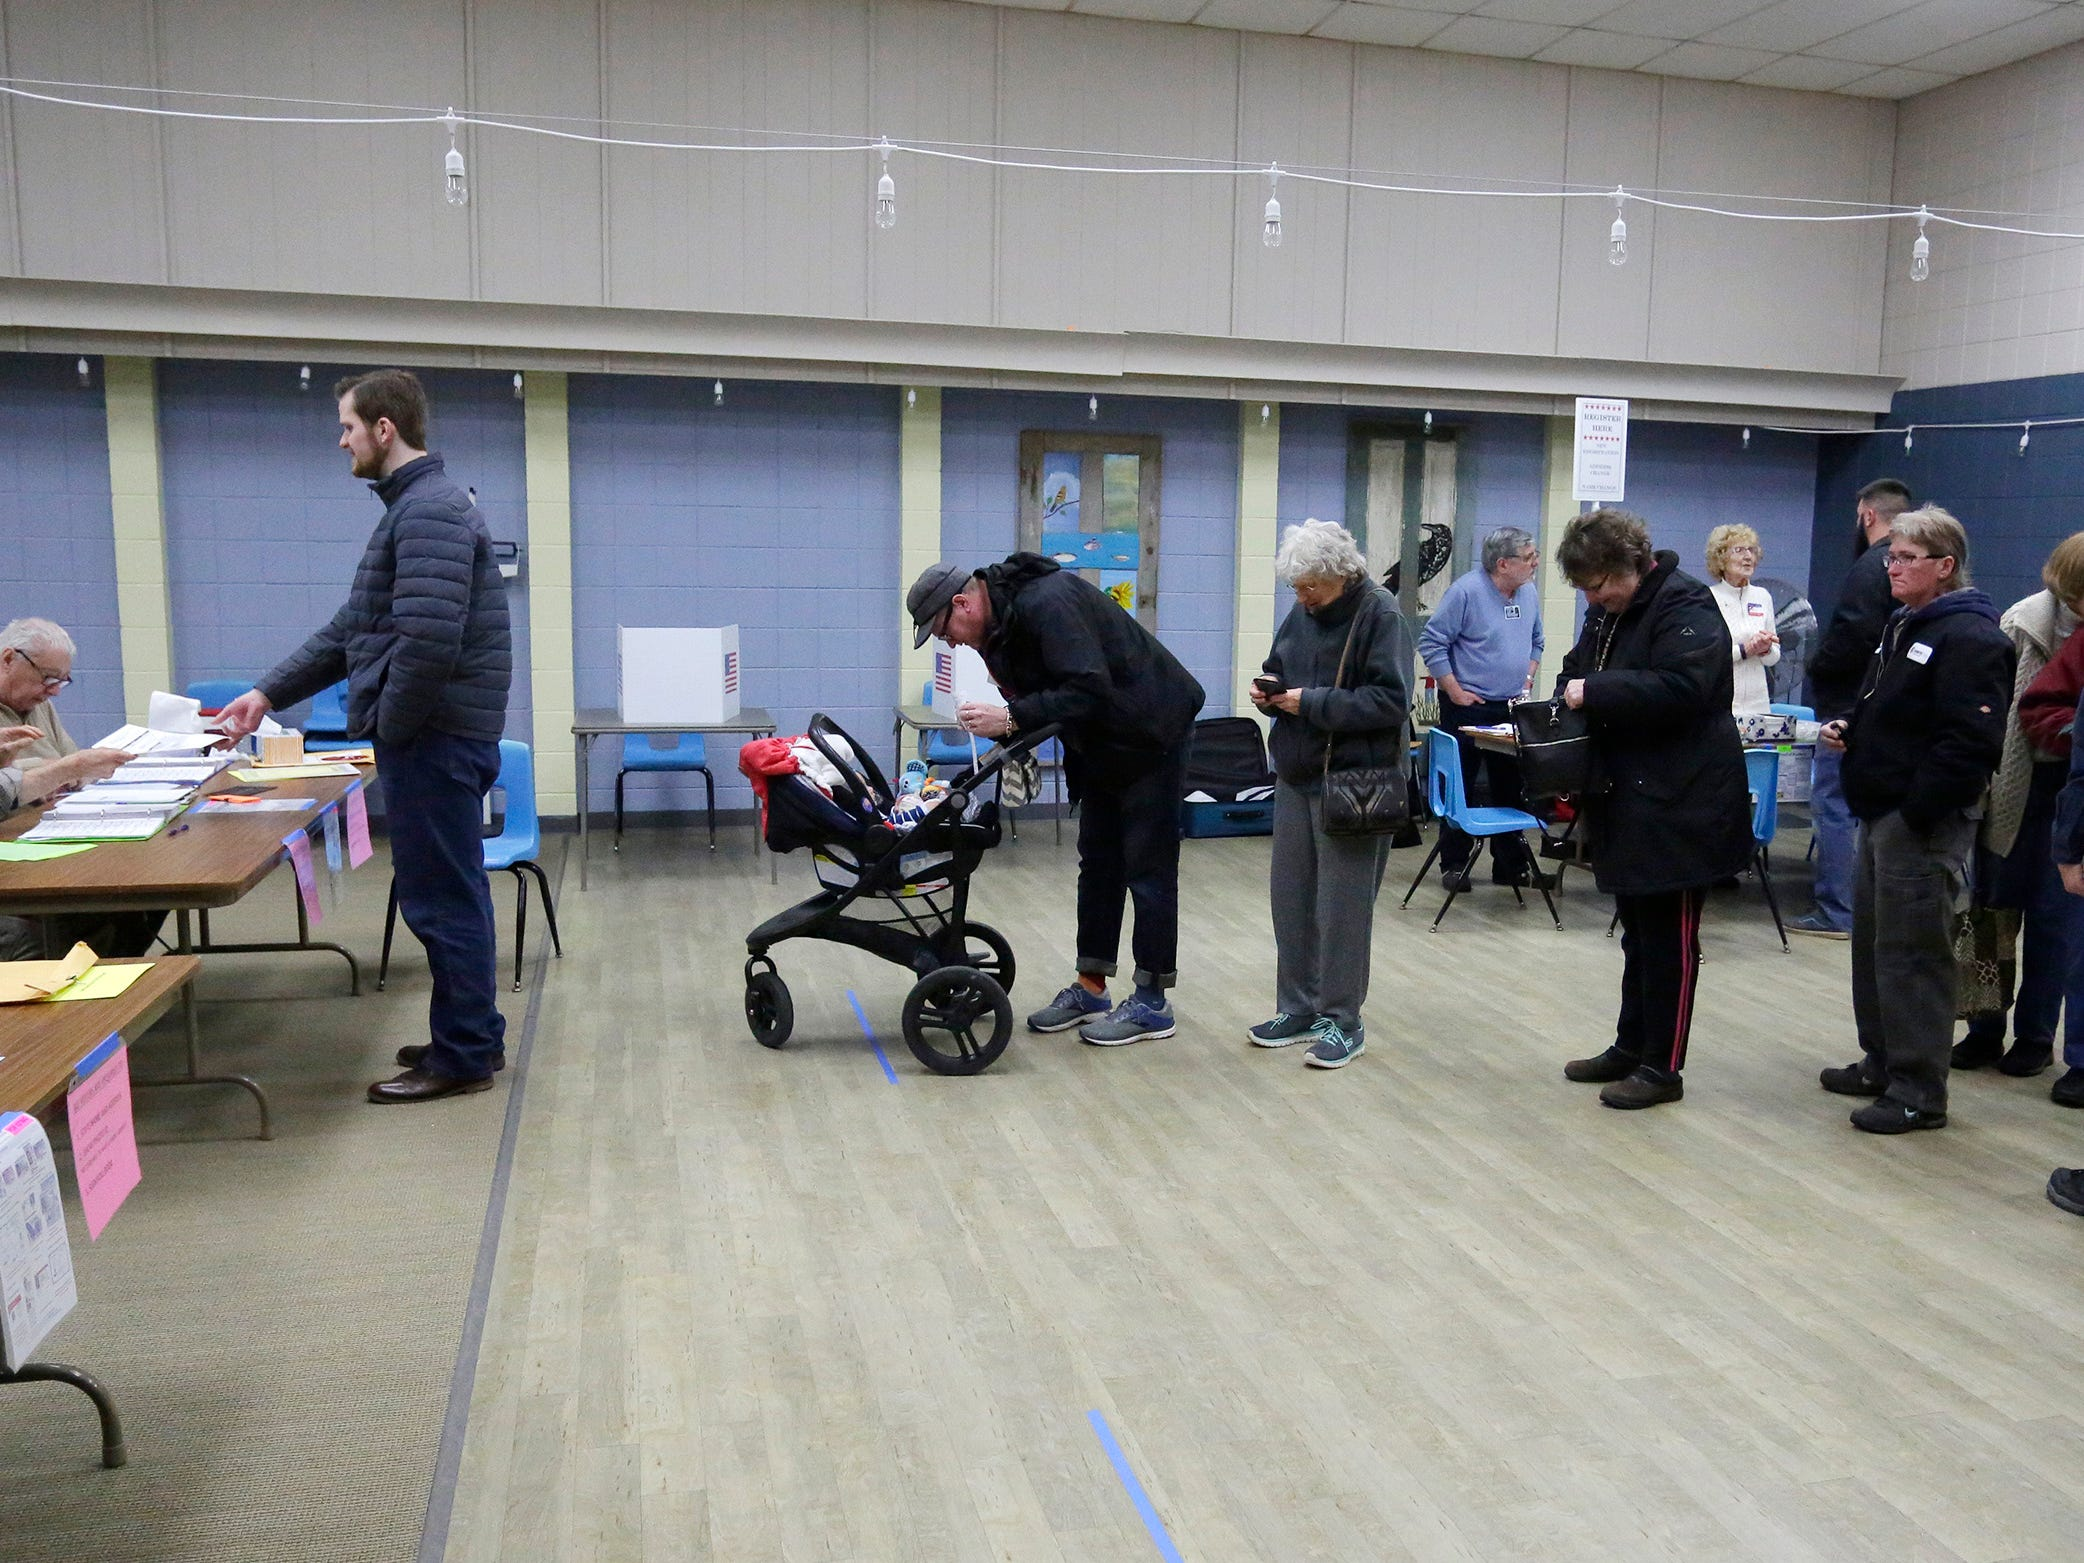 A line to vote at the Senior Activity Center, Tuesday, April 2, 2019, in Sheboygan, Wis.